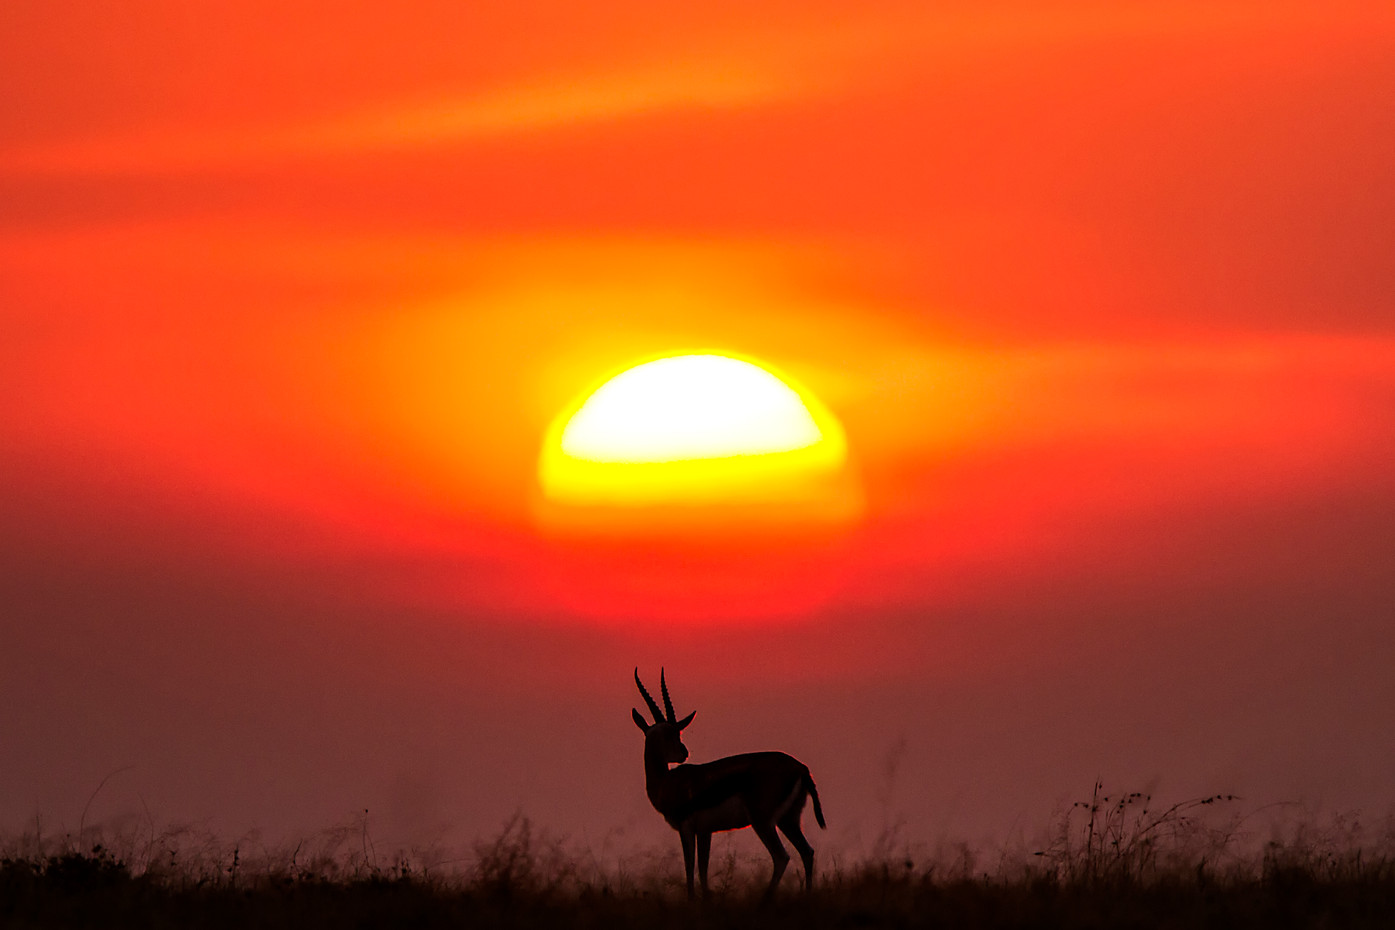 Thomson's Gazelle at sunset in the Serengeti NP, Tanzania